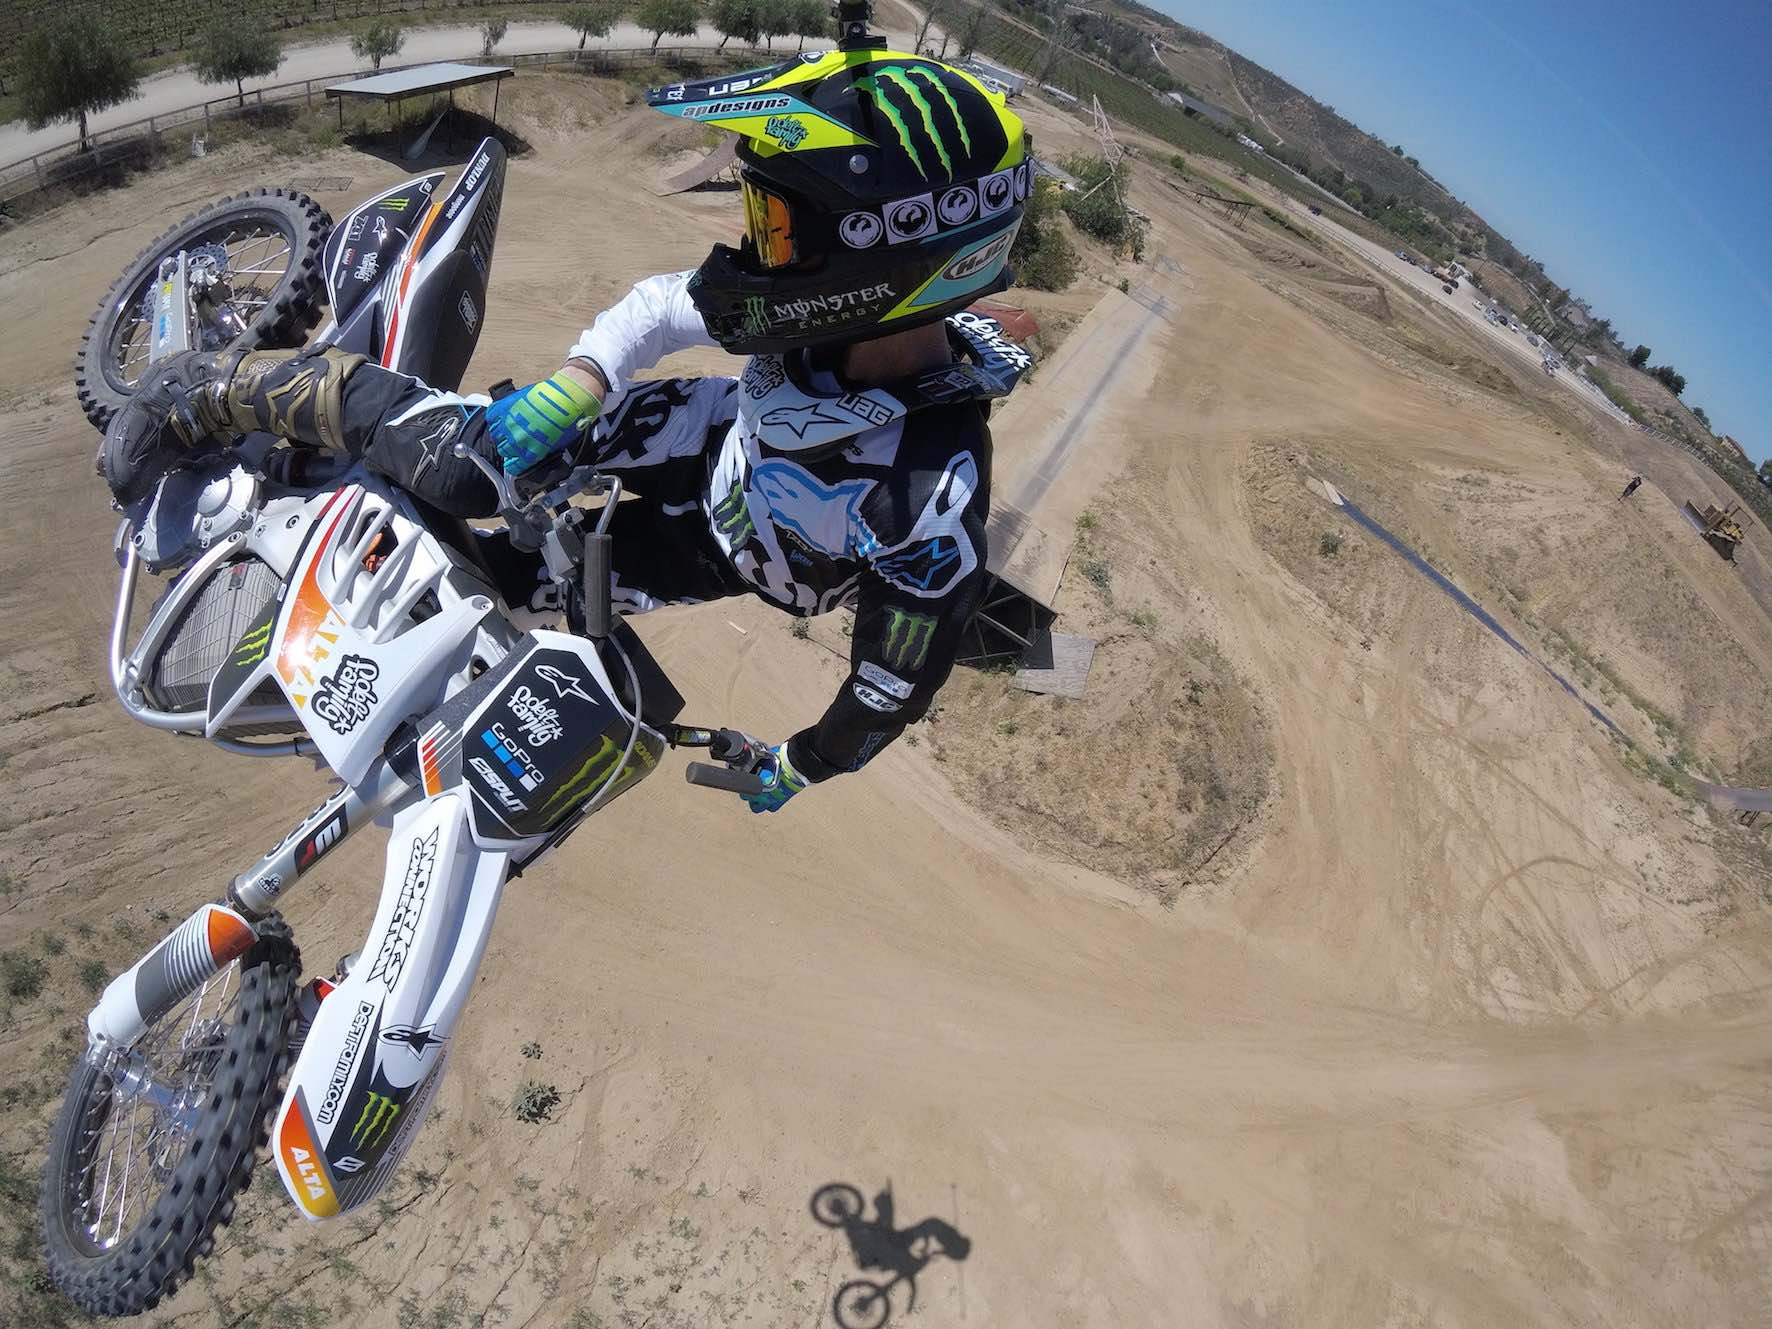 Interview with FMX rider Nate Adams